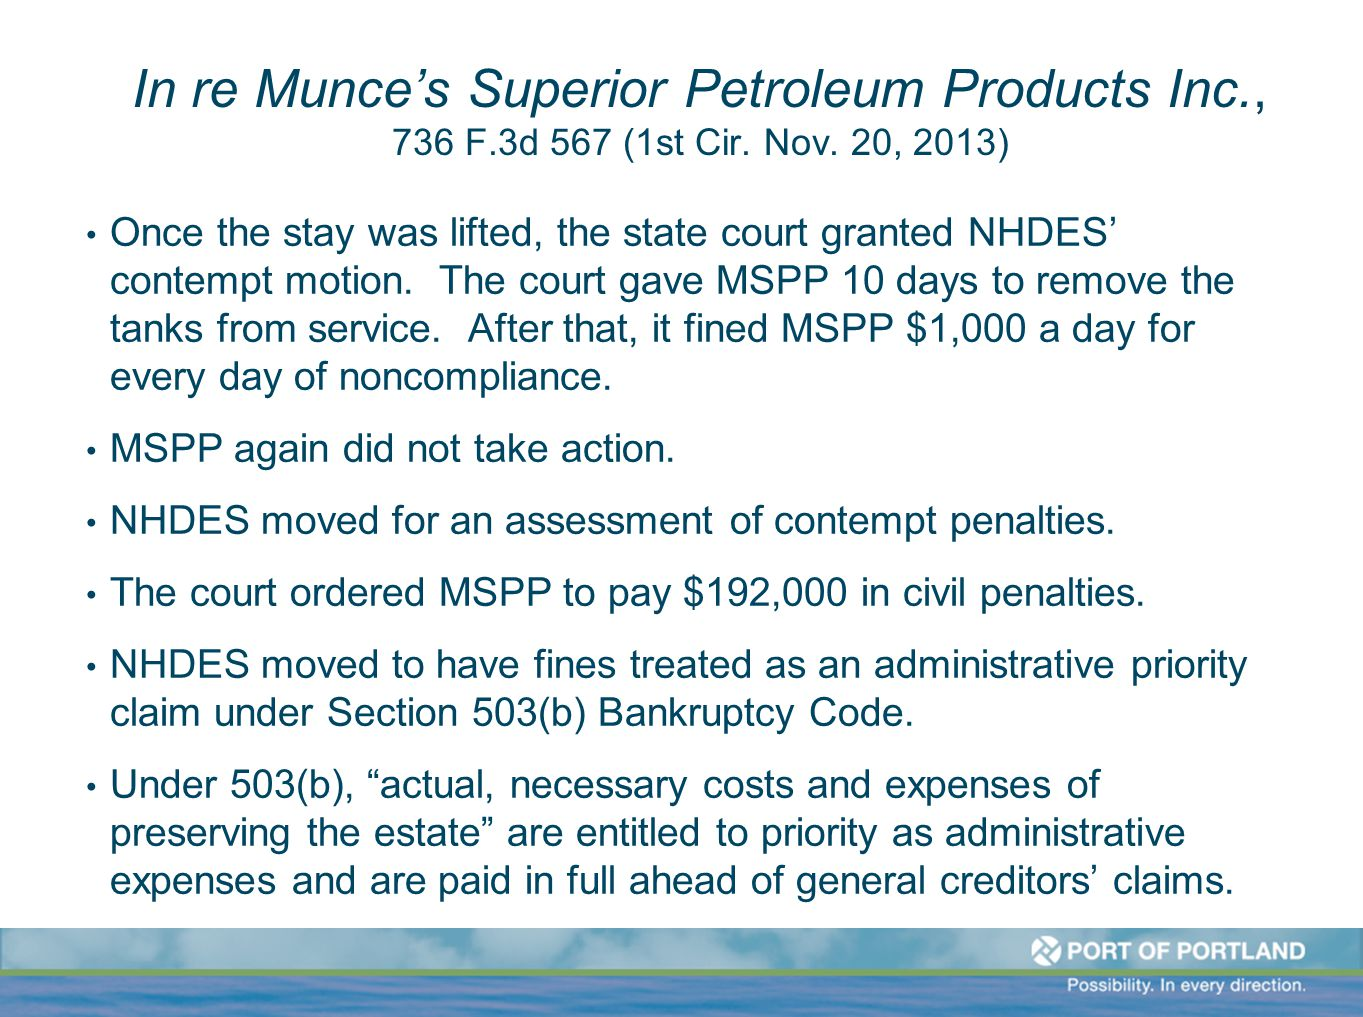 In re Munce's Superior Petroleum Products Inc., 736 F.3d 567 (1st Cir. Nov. 20, 2013) Once the stay was lifted, the state court granted NHDES' contemp